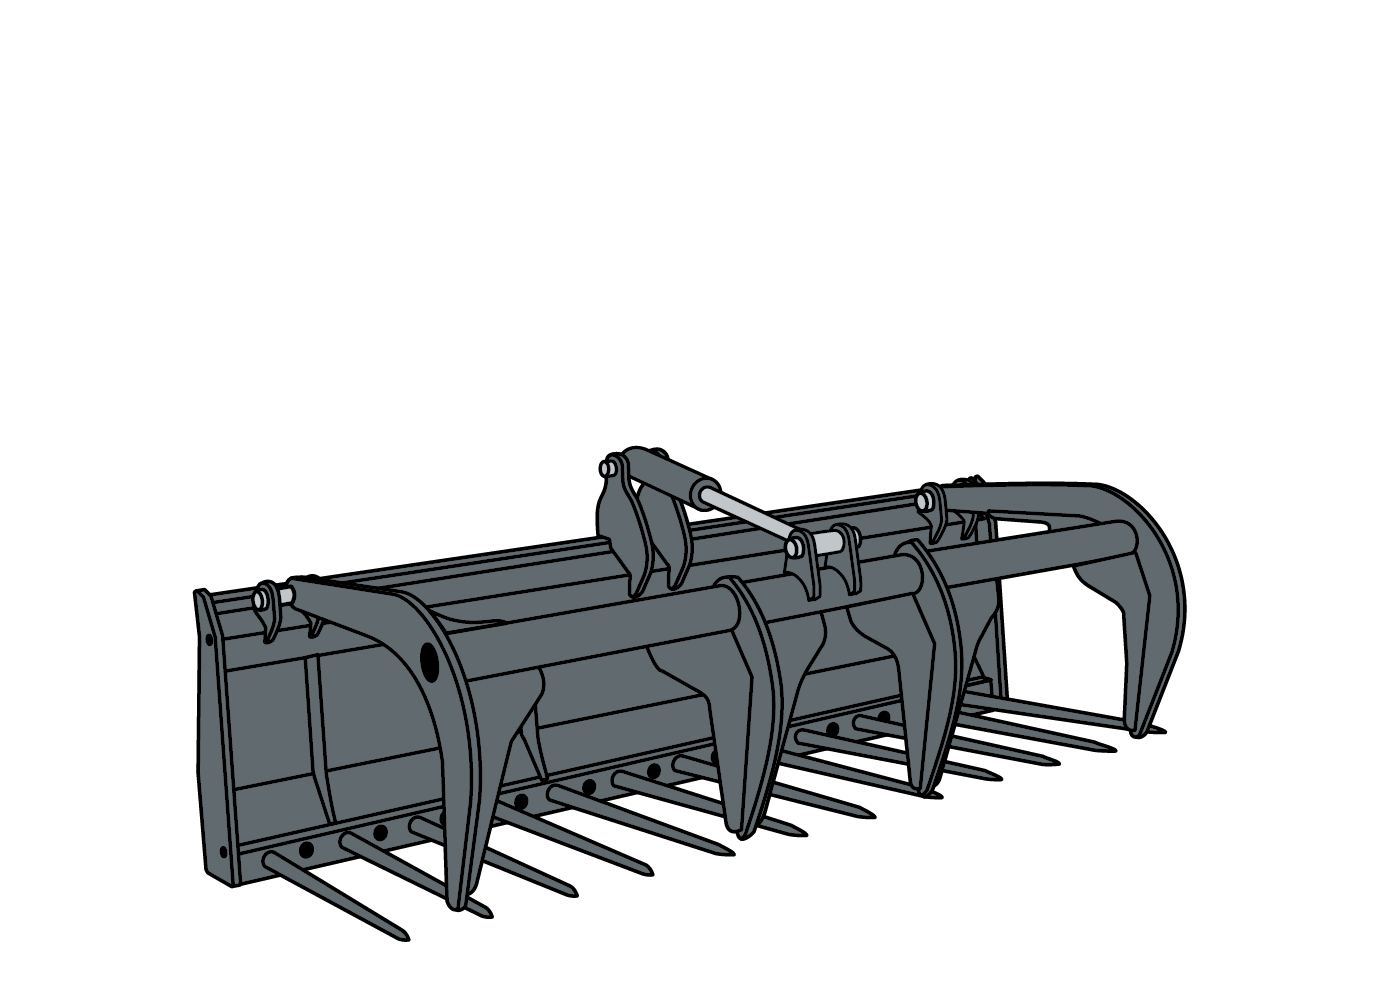 UTILITY GRAPPLES illustration